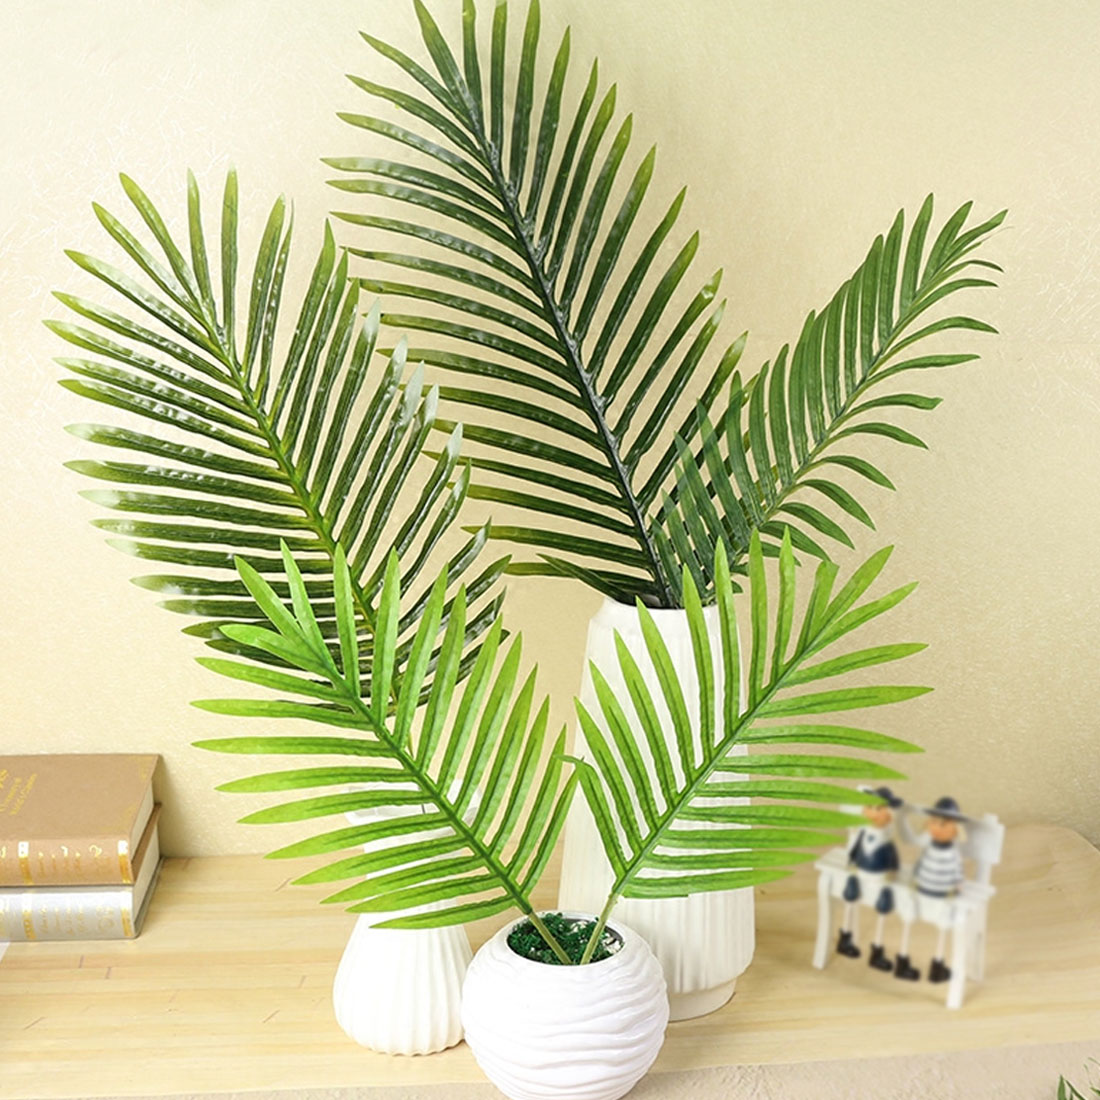 Large Artificial Fake Palm Tree Leaves Green Plastic Leaf for DIY ...